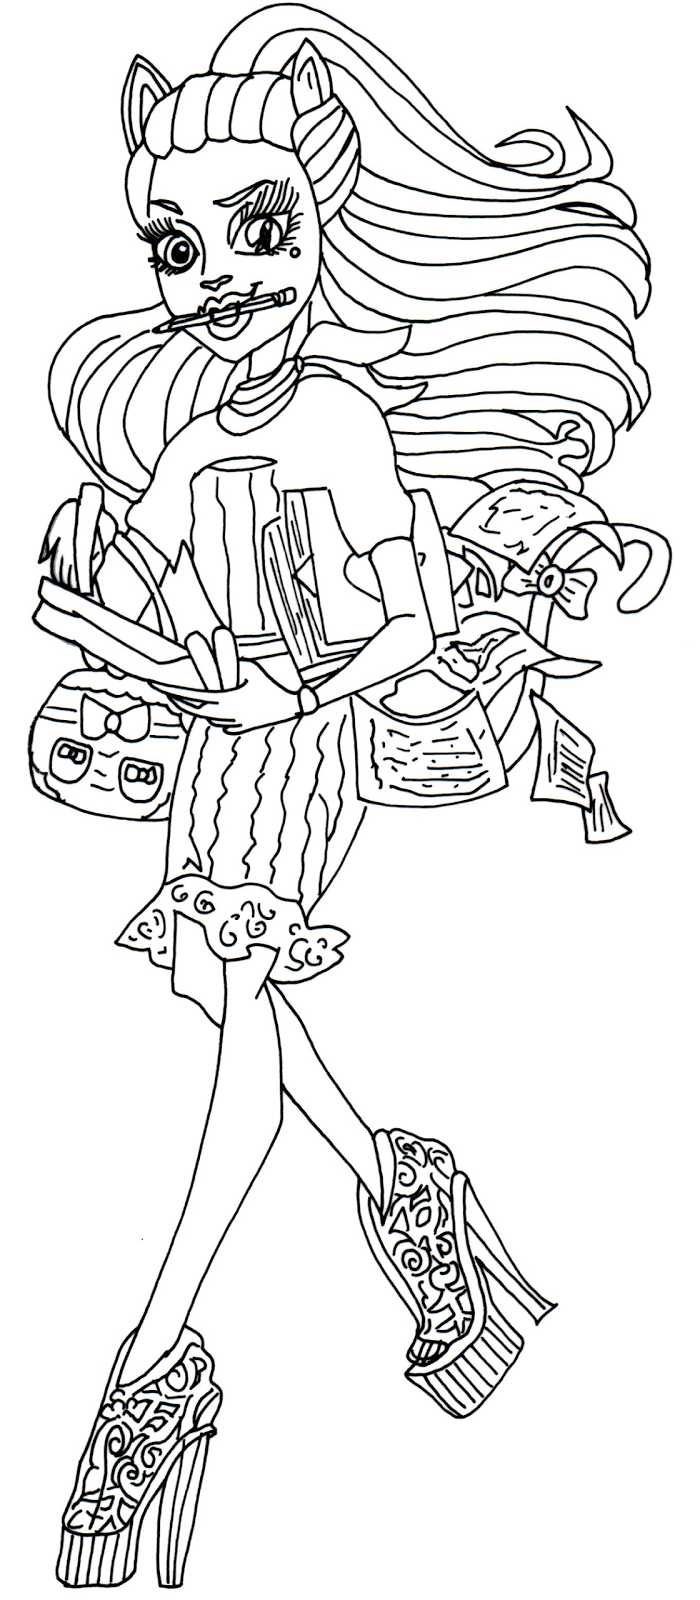 catty noir coloring pages - photo#17